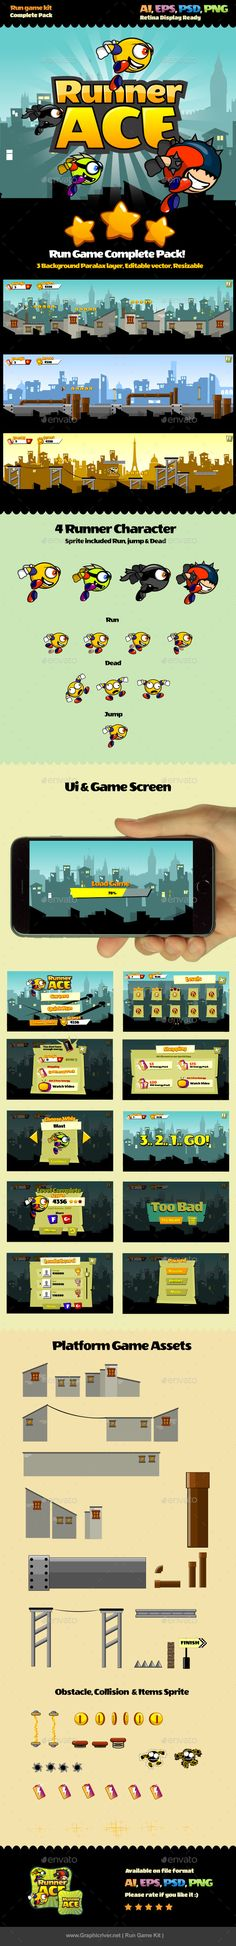 Run Game Kit - Game Kits #Game #Assets | Download http://graphicriver.net/item/run-game-kit/10378499?ref=sinzo